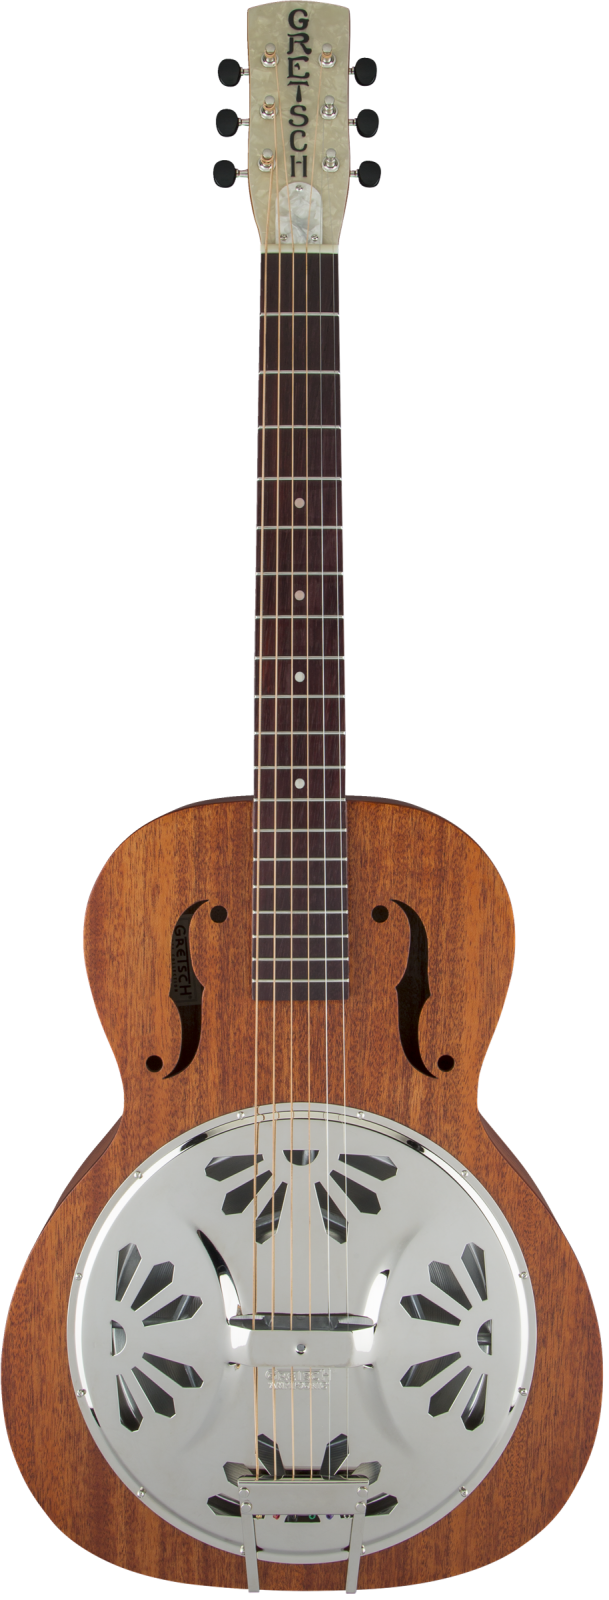 Gretsch G9200 Boxcar Round-Neck, Mahogany Body Resonator Guitar, Natural